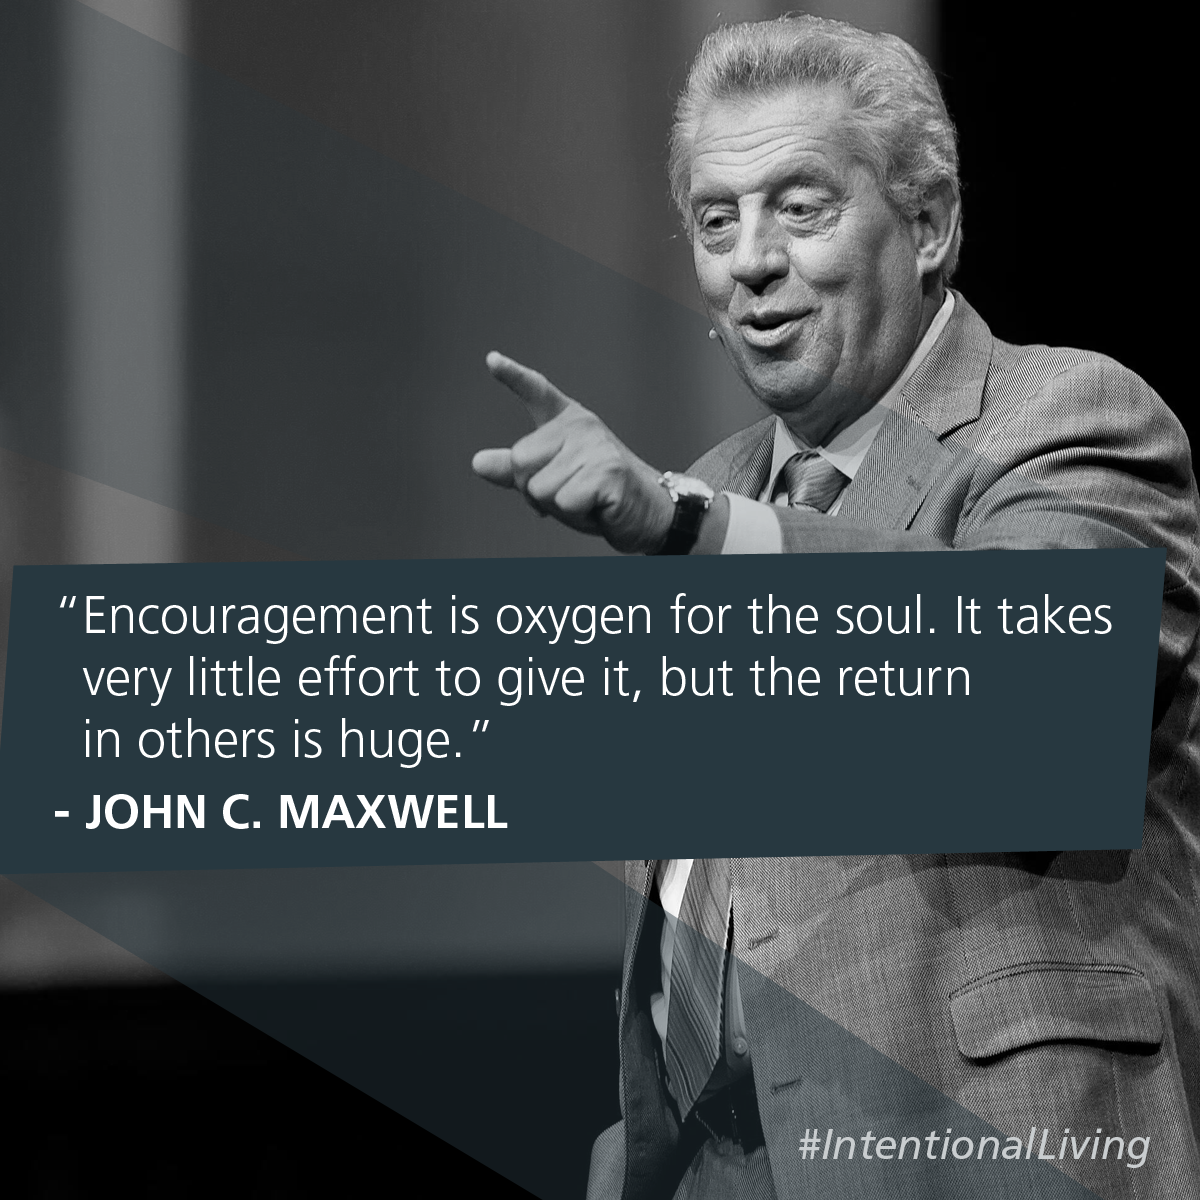 John C Maxwell On Twitter Encouragement Is Oxygen For The Soul